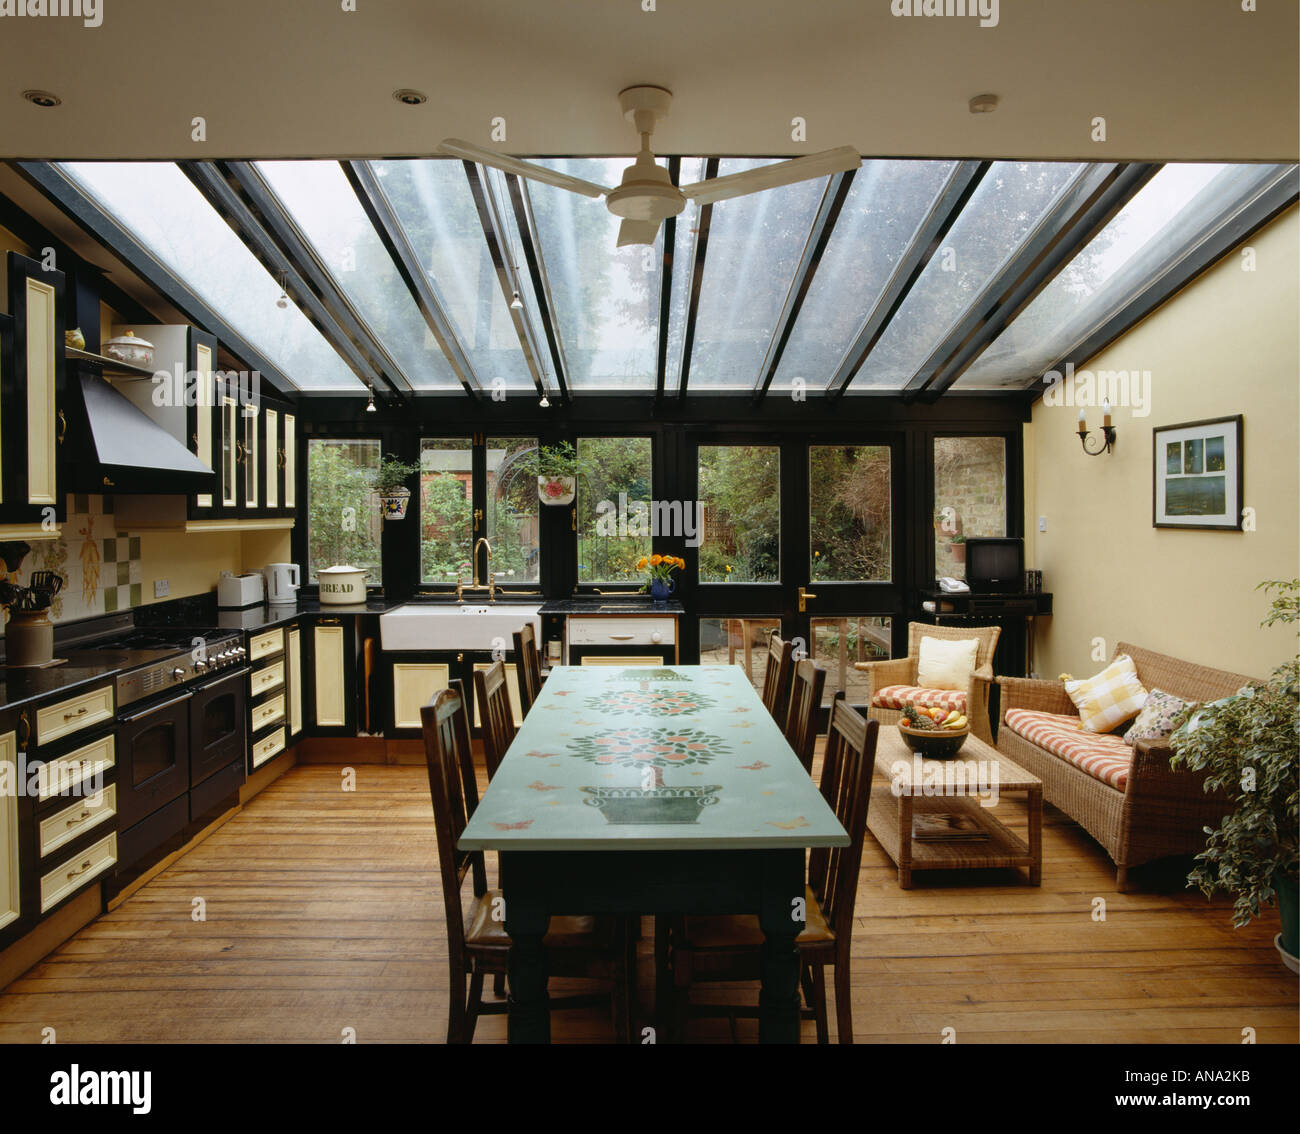 Decoratively Painted Table And Comfy Sofa In Modern Openplan Kitchen Dining Room Extension With Glass Roof